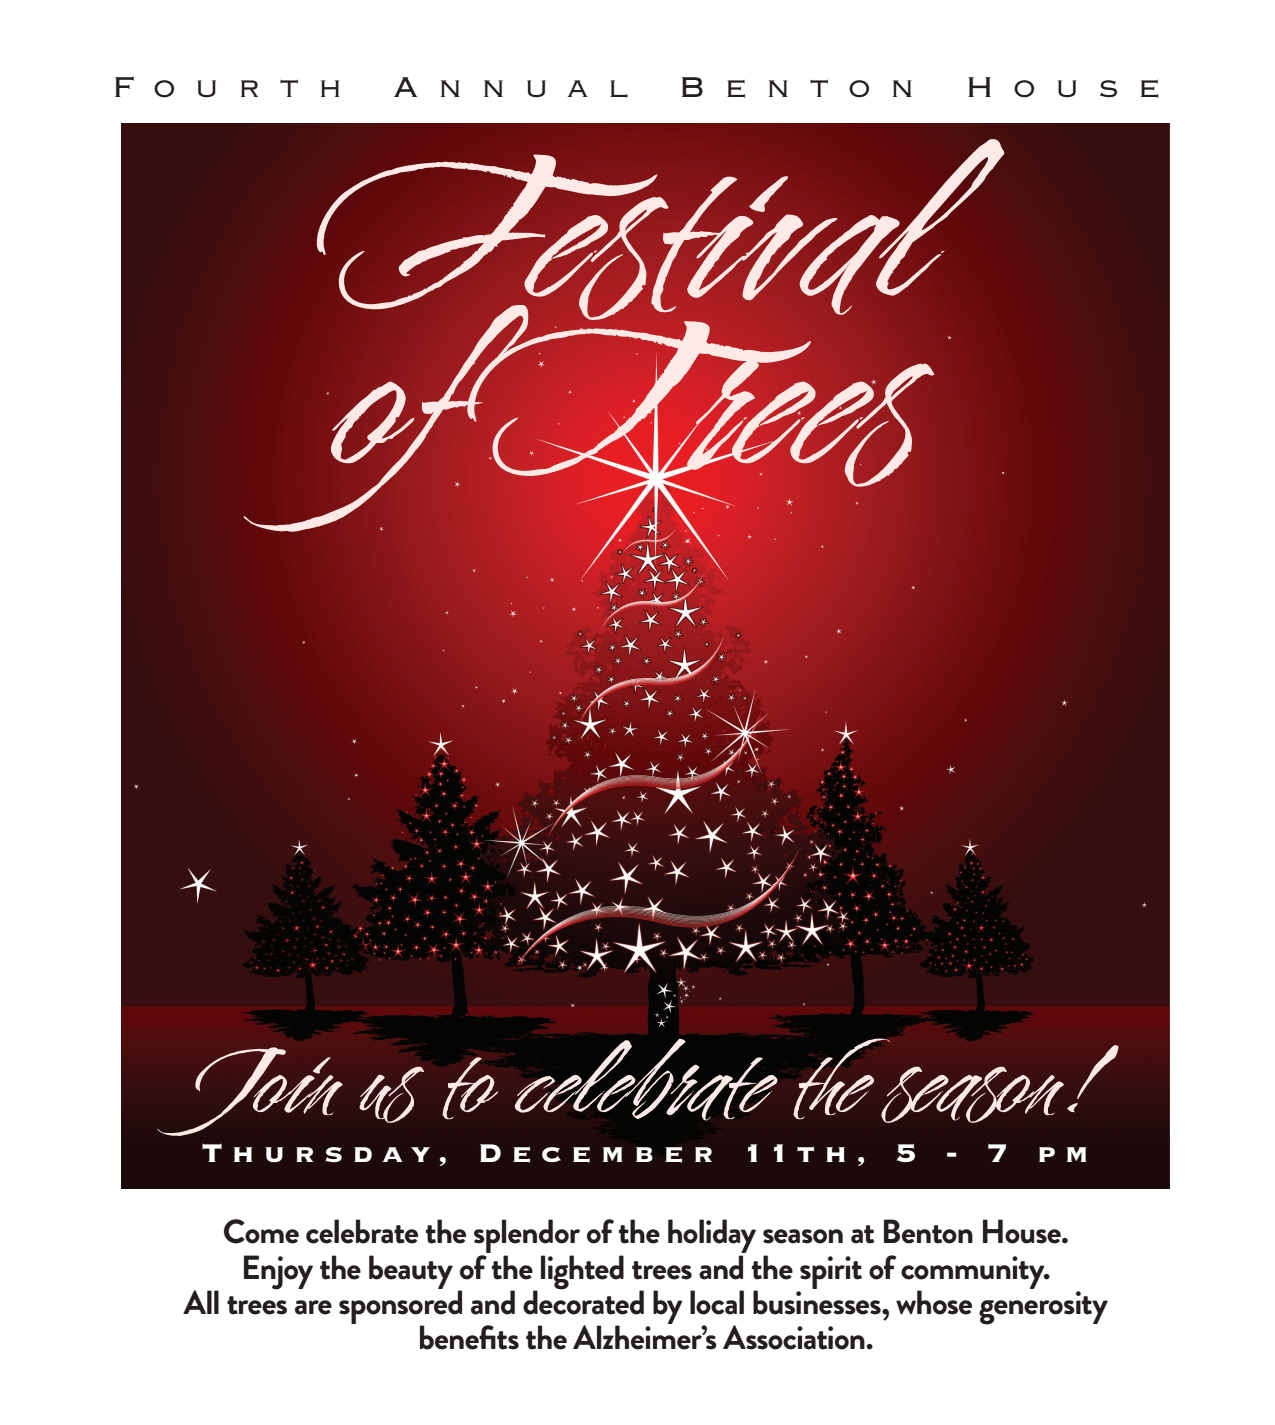 Festival of Trees - activities at Benton Village of Stockbridge in Stockbridge, GA